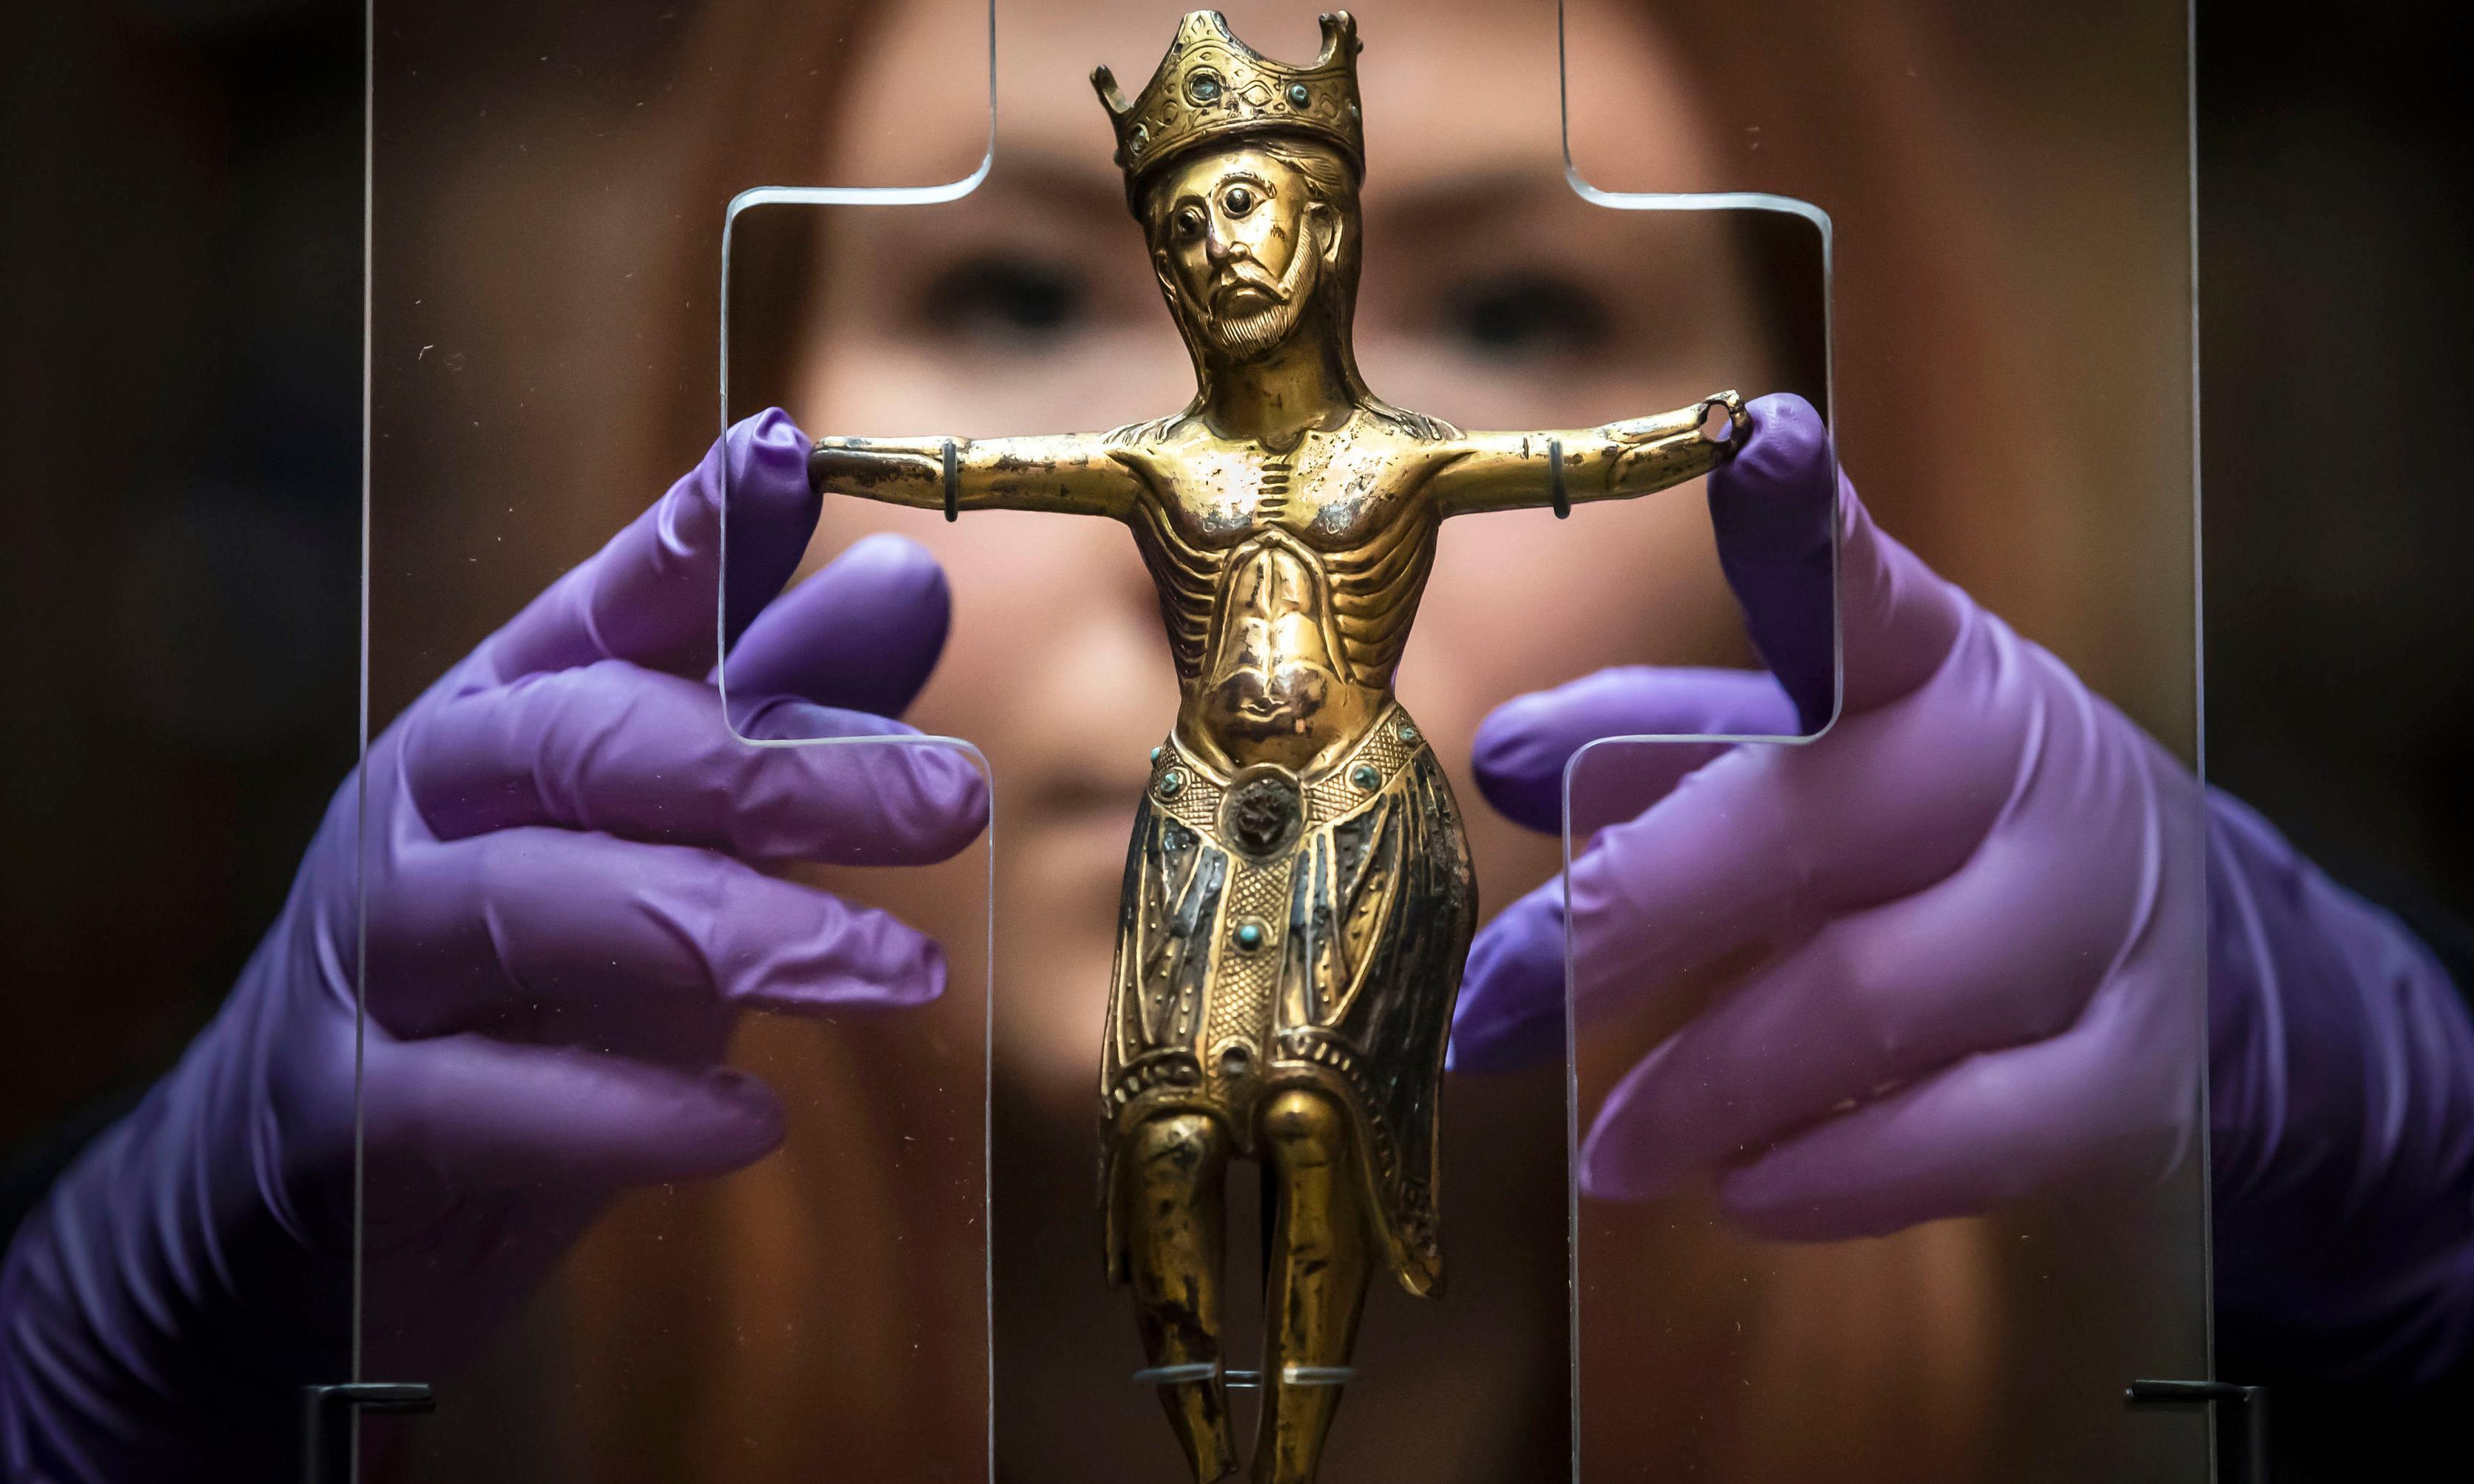 'Exquisite' 800-year-old Christ figure displayed in its spiritual home